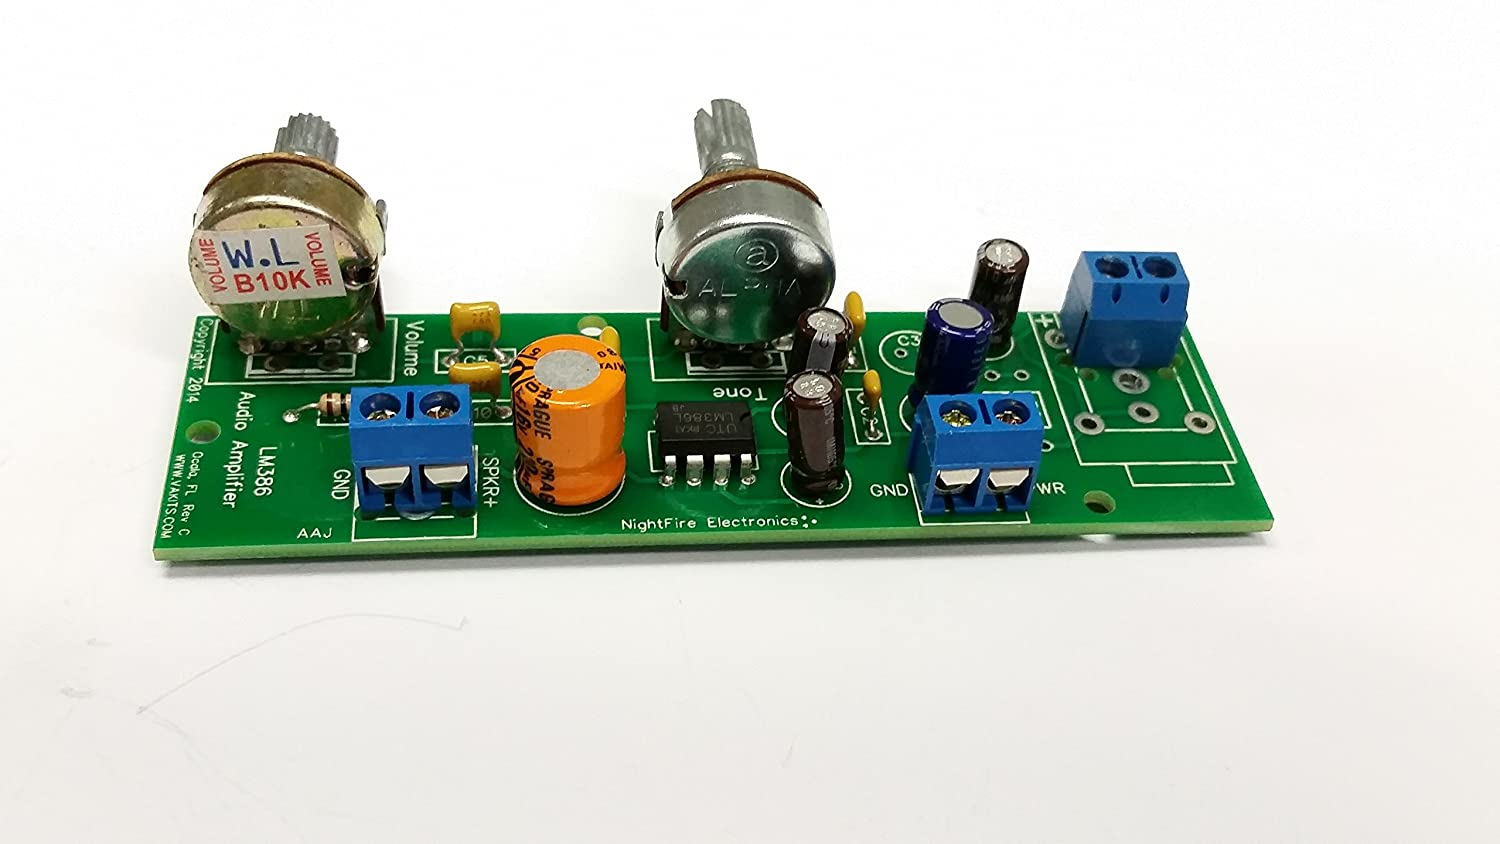 Lm386 Audio Amplifier Kit 2 Pin In Out Home Details About 12v Mini Hifi Pam8610 Stereo Circuit Theater